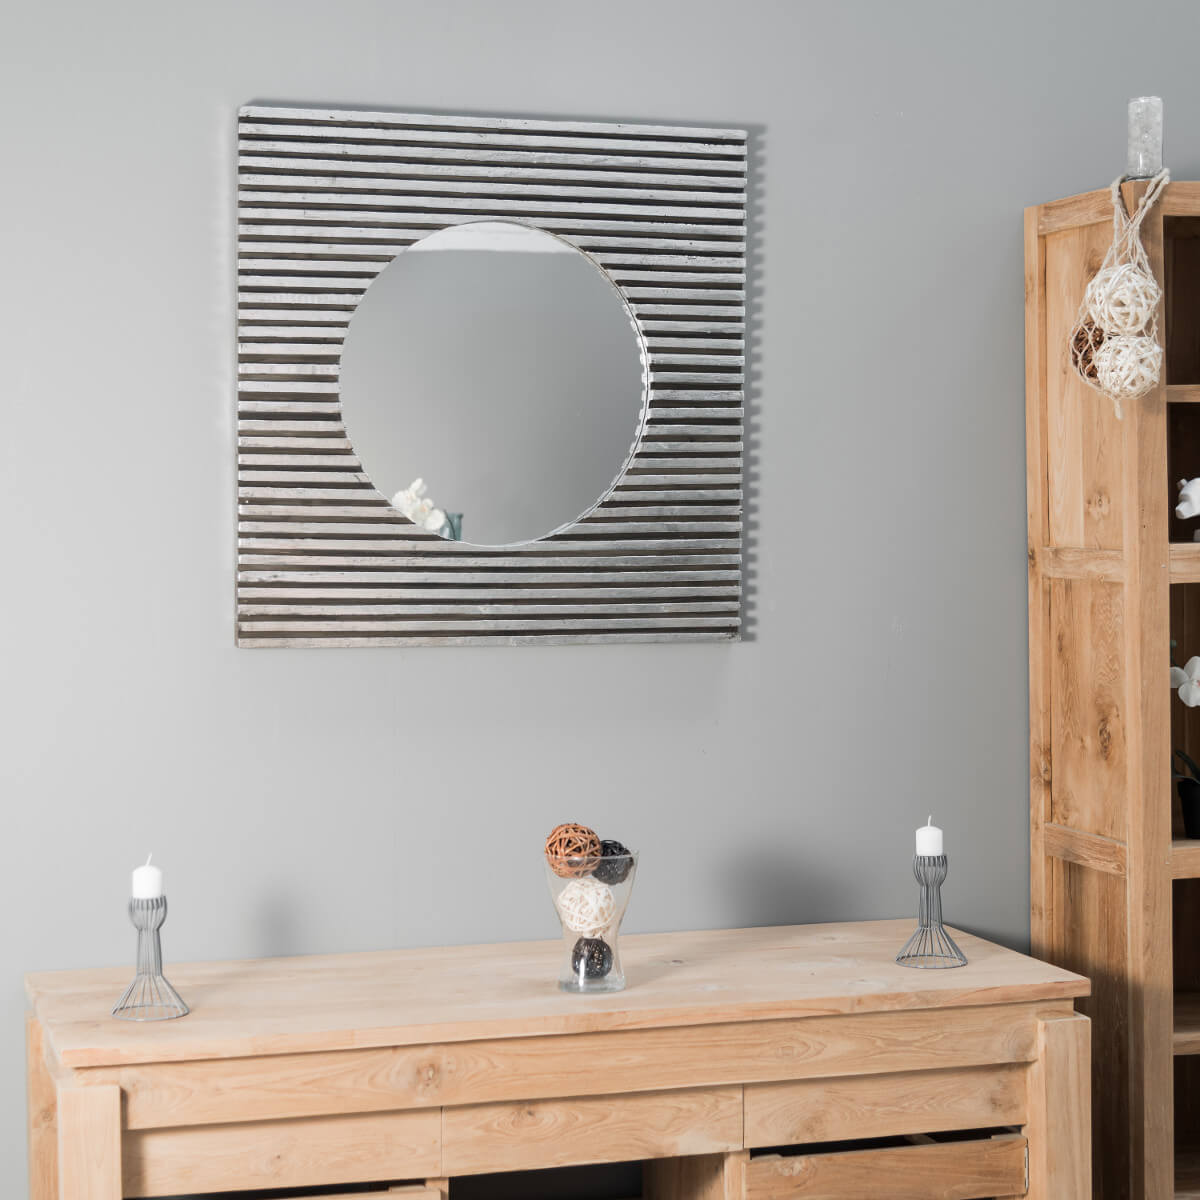 Miroir de d coration en bois massif art d co carr for Miroir 140 x 100